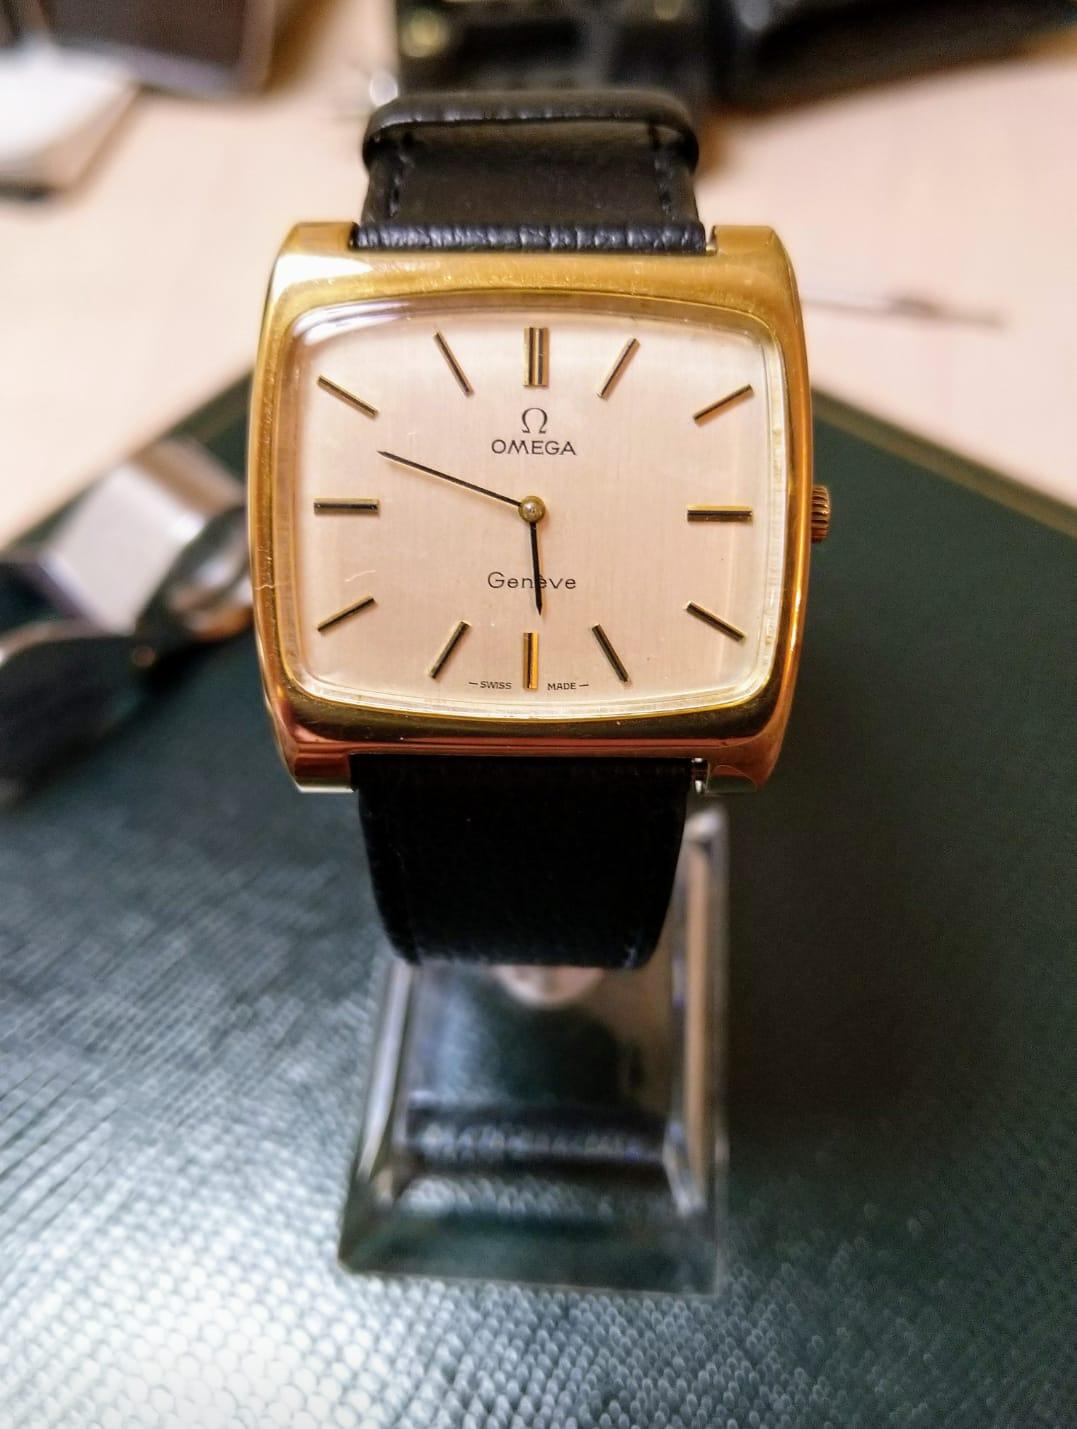 A 1971 Omega Geneve TV Dial, Cal.620, Manual Wind, Gold Filled, Signed Crystal, 34mm x 30mm, A/F